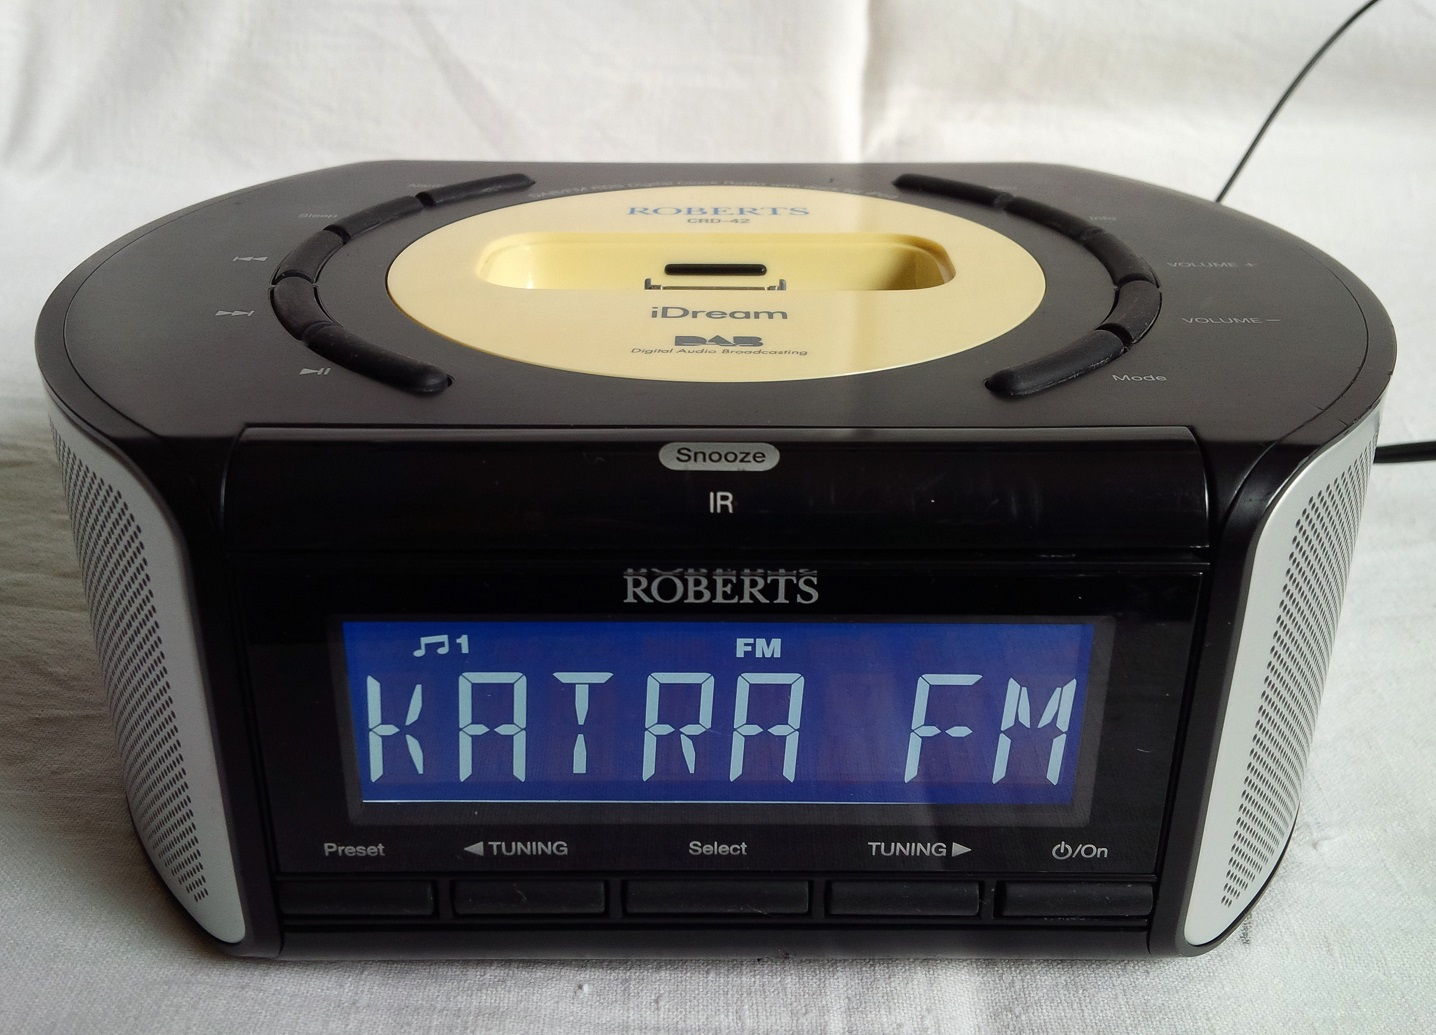 ROBERTS CRD-42 iDream, iPod/iPhone докинг станция с DAB/FM/RDS радио, часовник и AUX вход